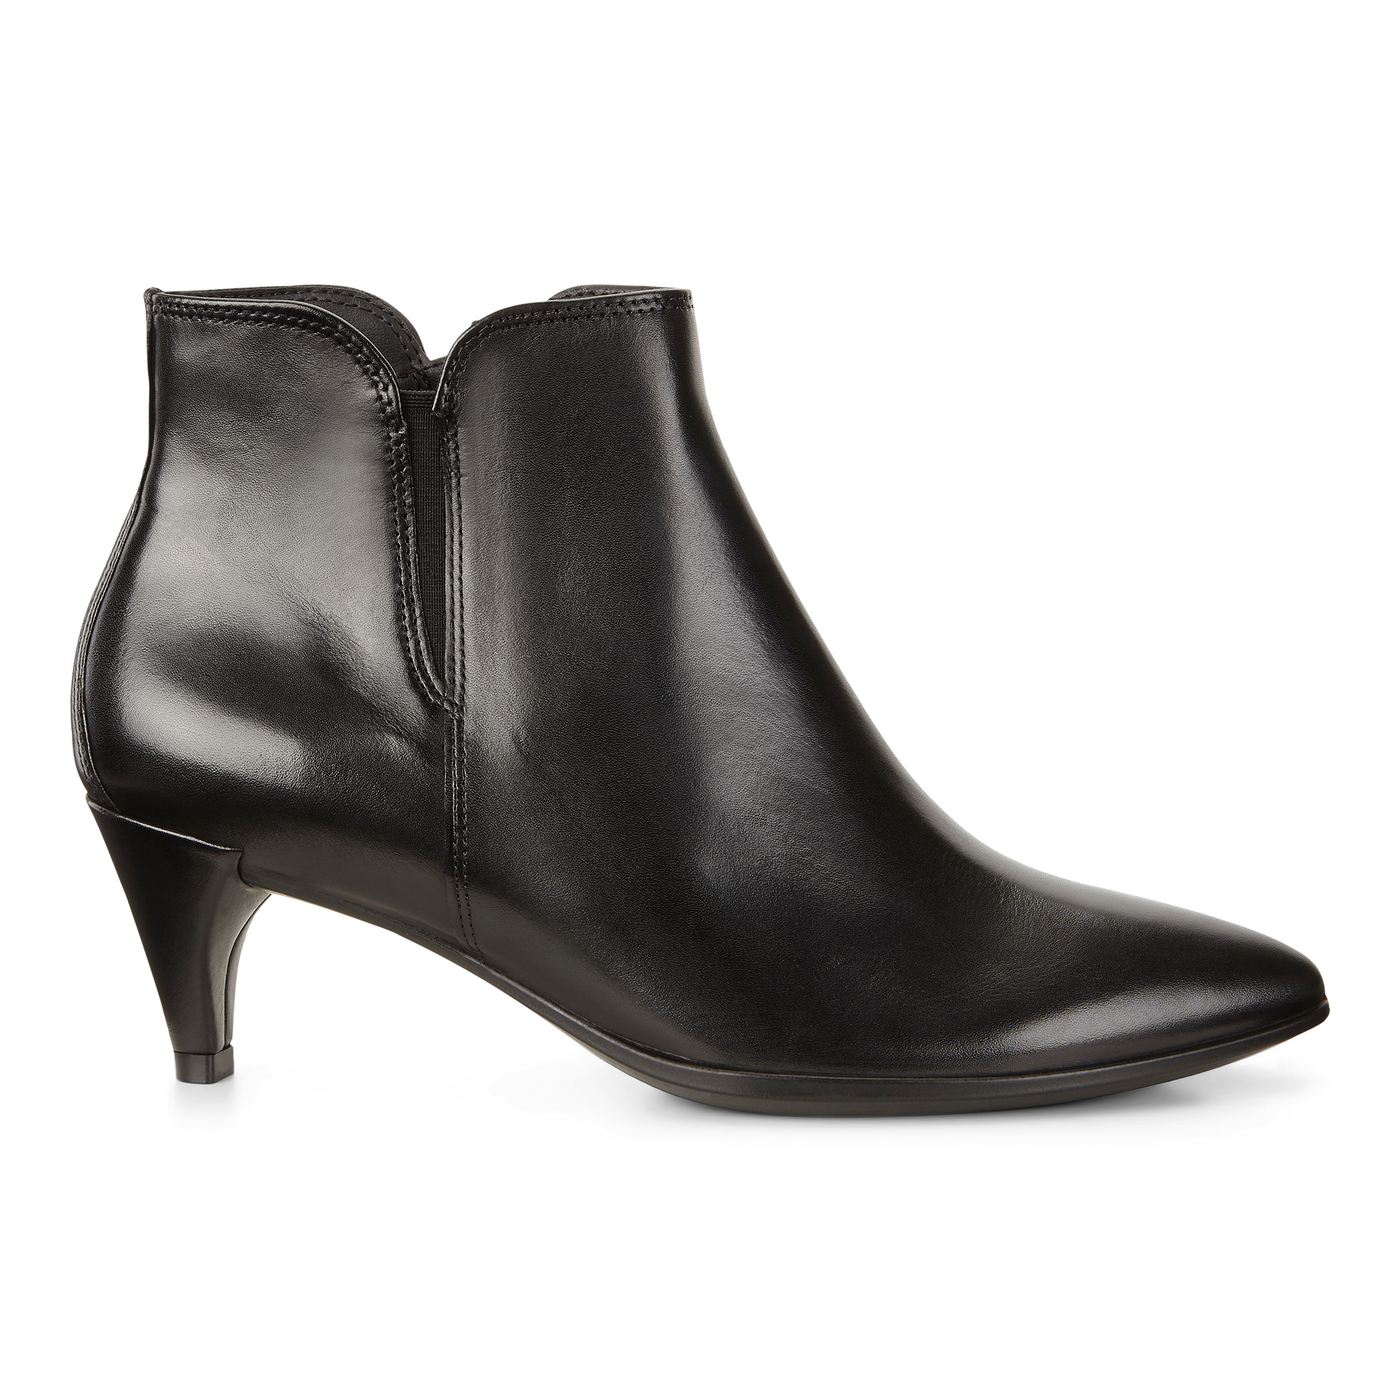 ECCO SHAPE POINTY SLEEK Ankle Boot 45mm